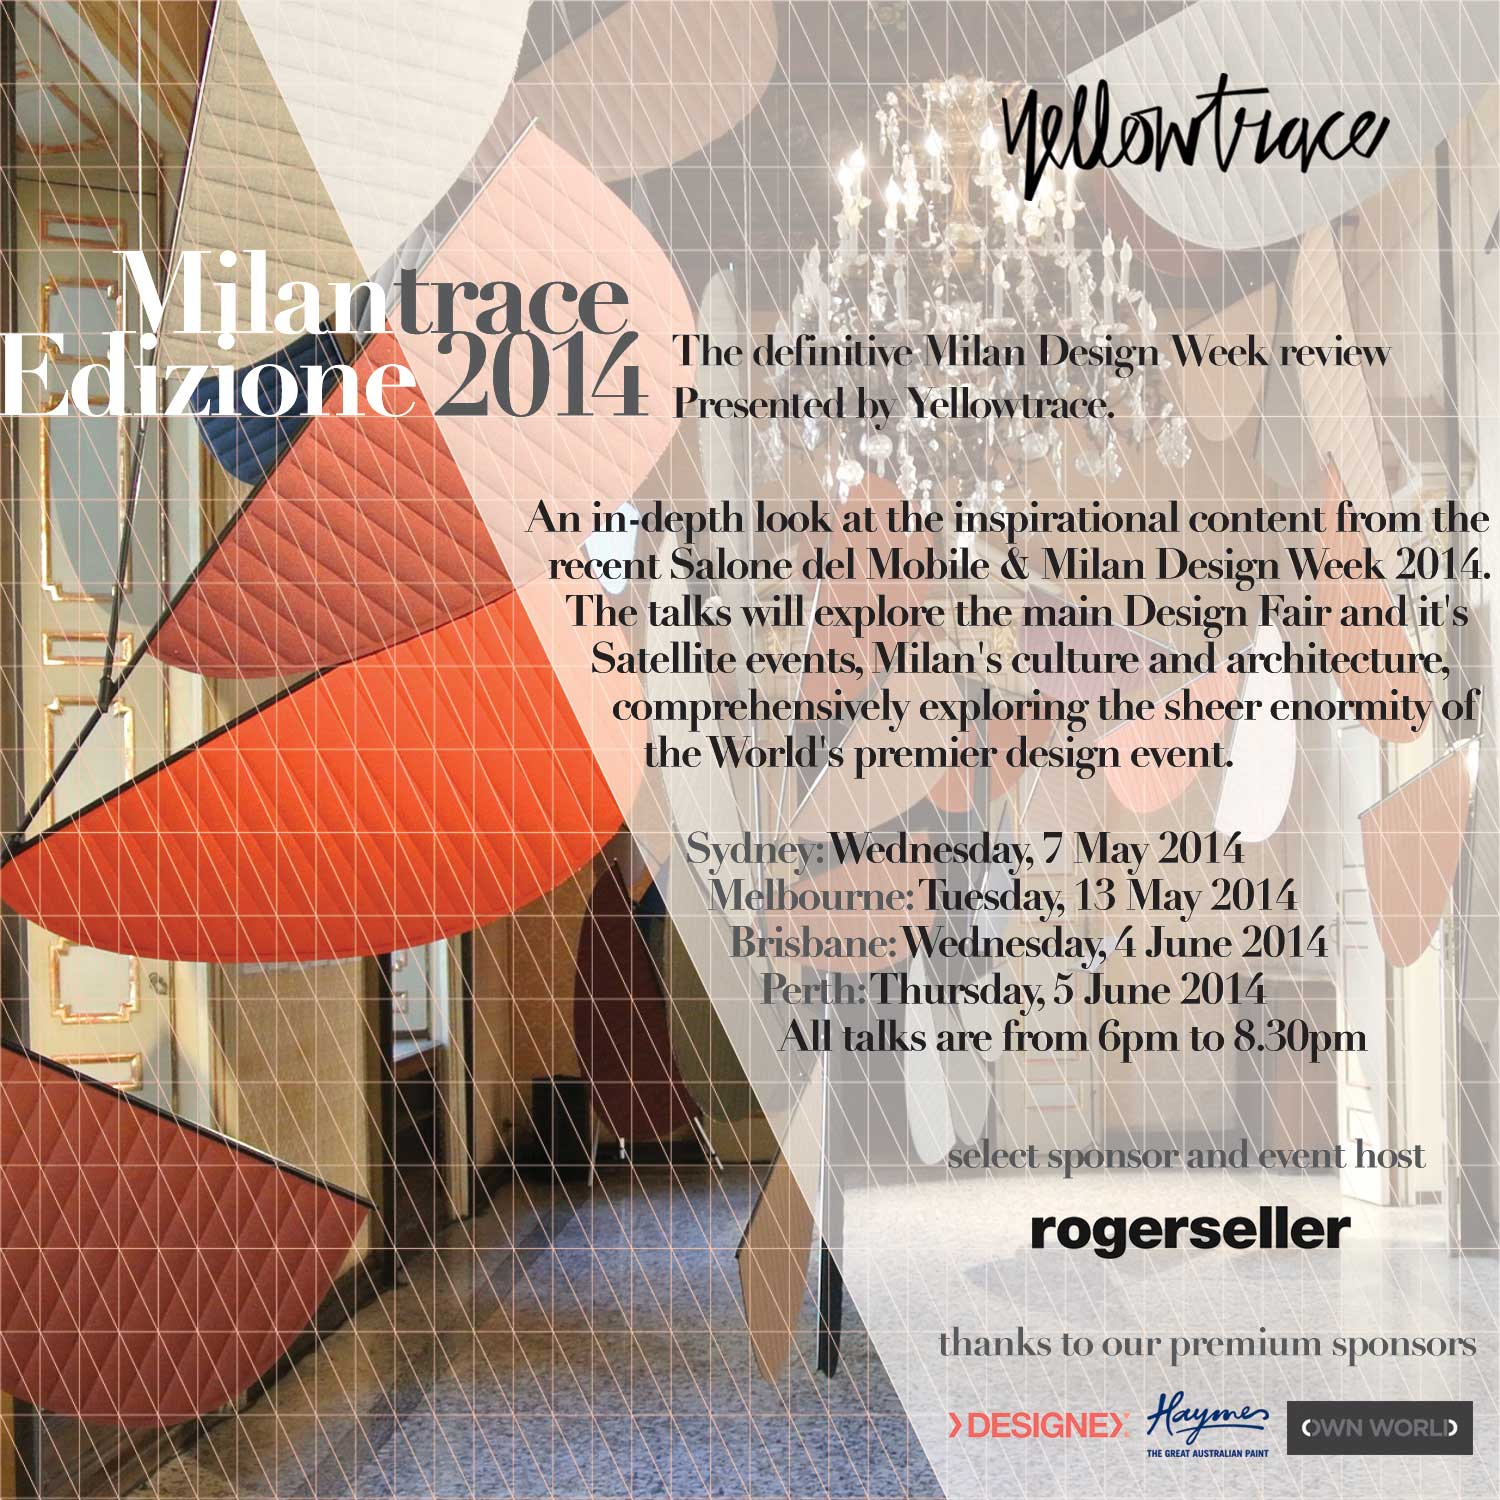 MILANTRACE, Edizione 2014 // Invitation to the Milan Design Week Talk Series Presented by Yellowtrace.